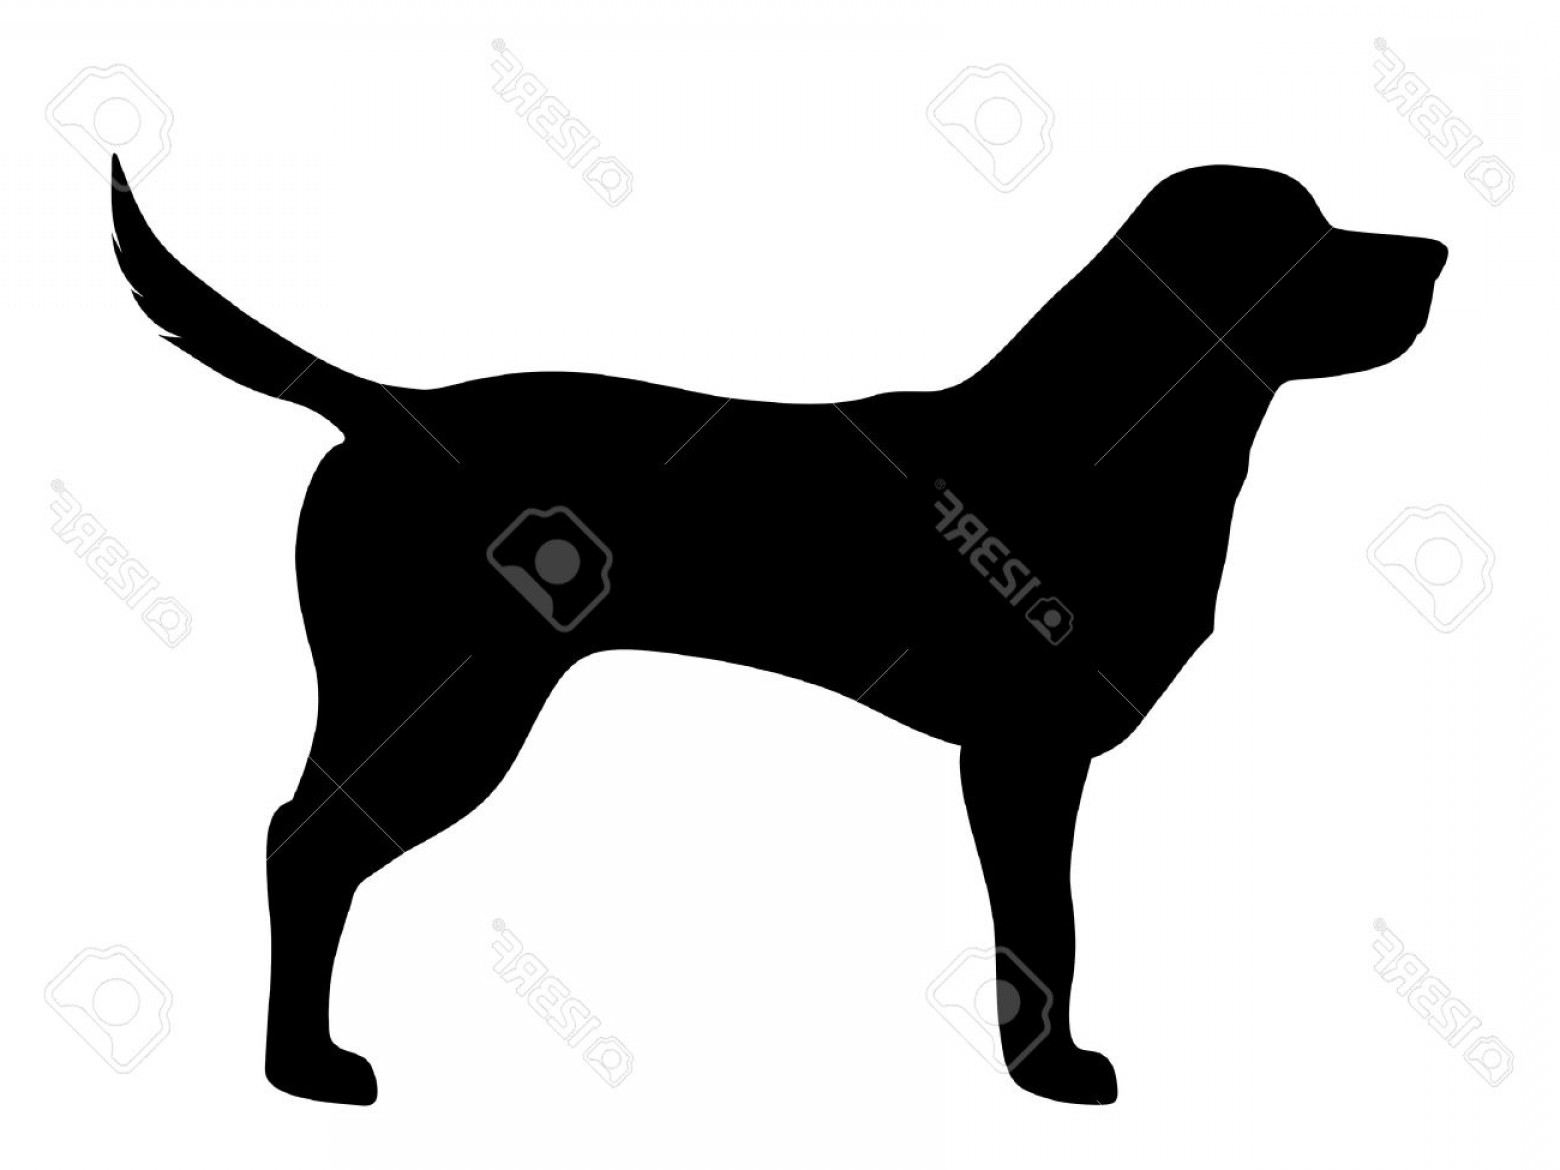 1560x1170 Vector Outline Of Golden Retriever Arenawp